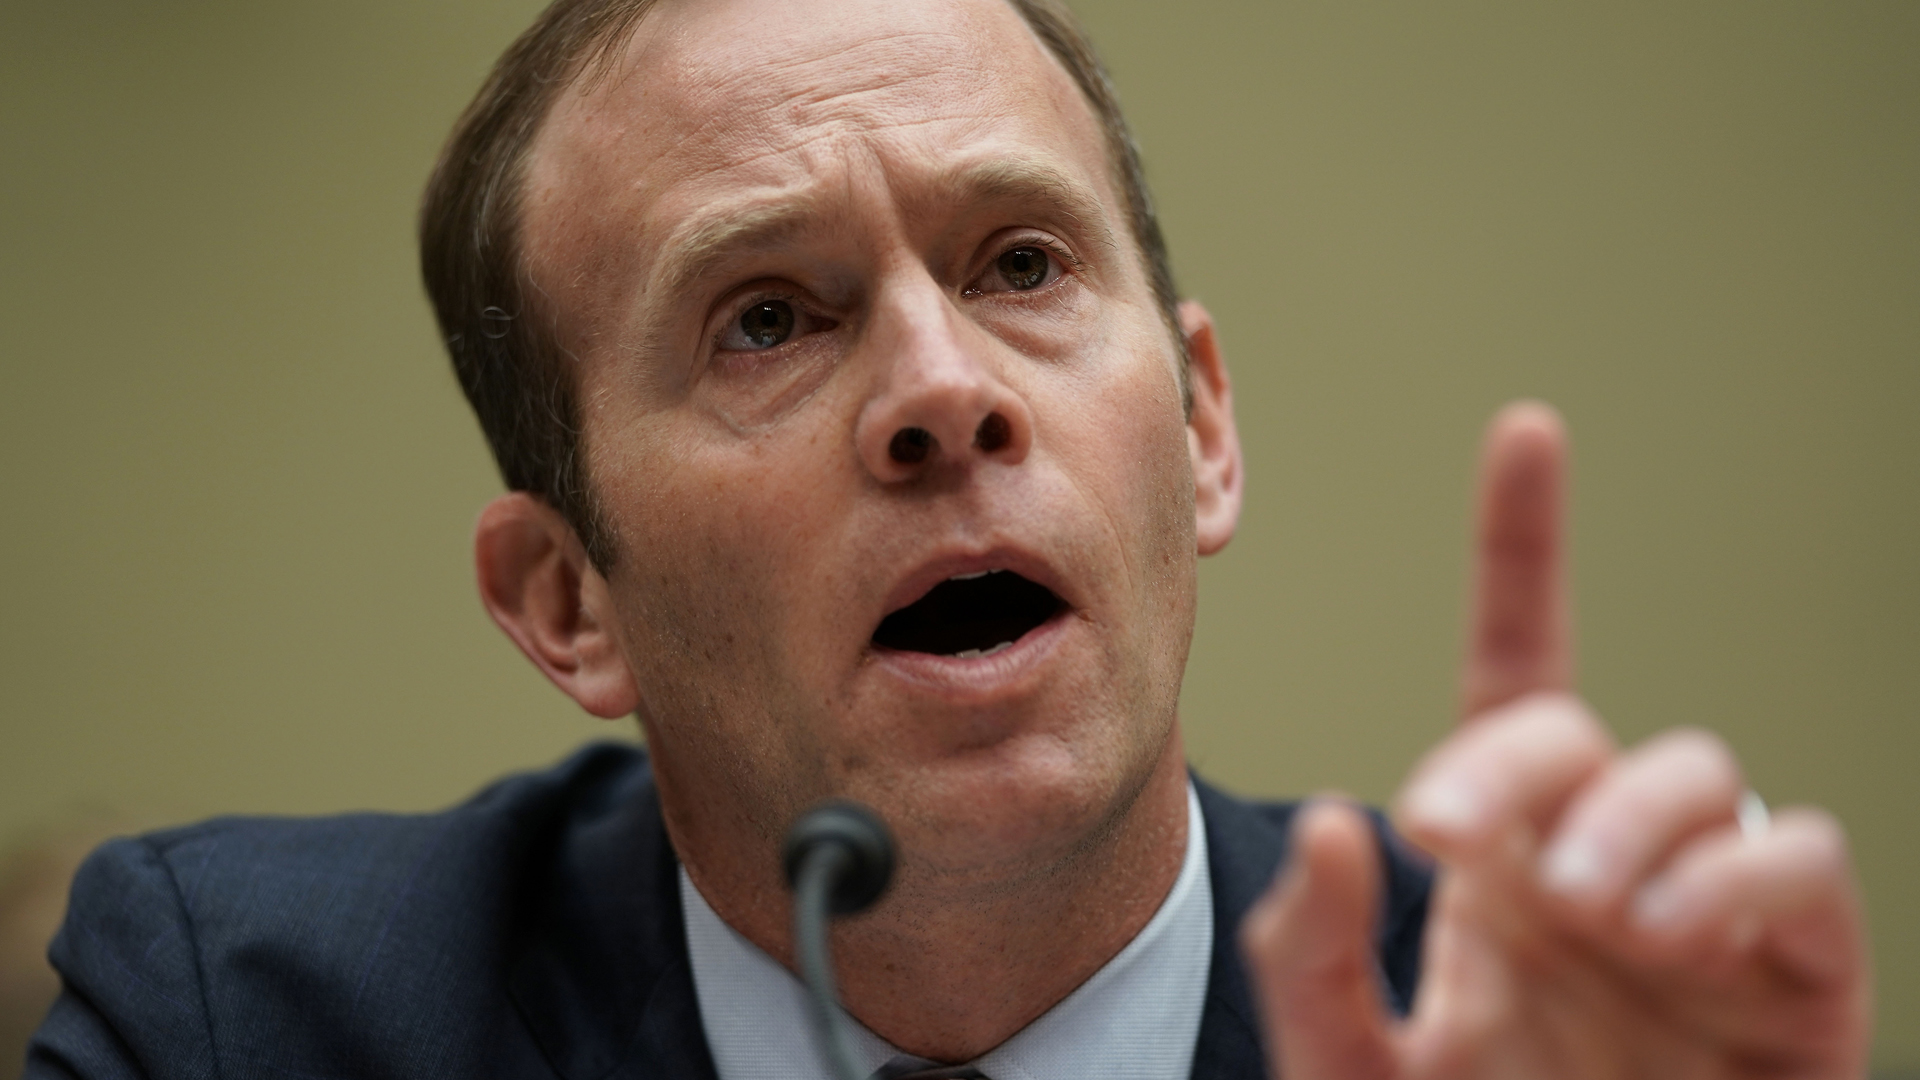 Federal Emergency Management Agency (FEMA) Administrator Brock Long testifies during a hearing before the House Oversight and Government Reform Committee November 29, 2018 on Capitol Hill. (Credit: Alex Wong/Getty Images)